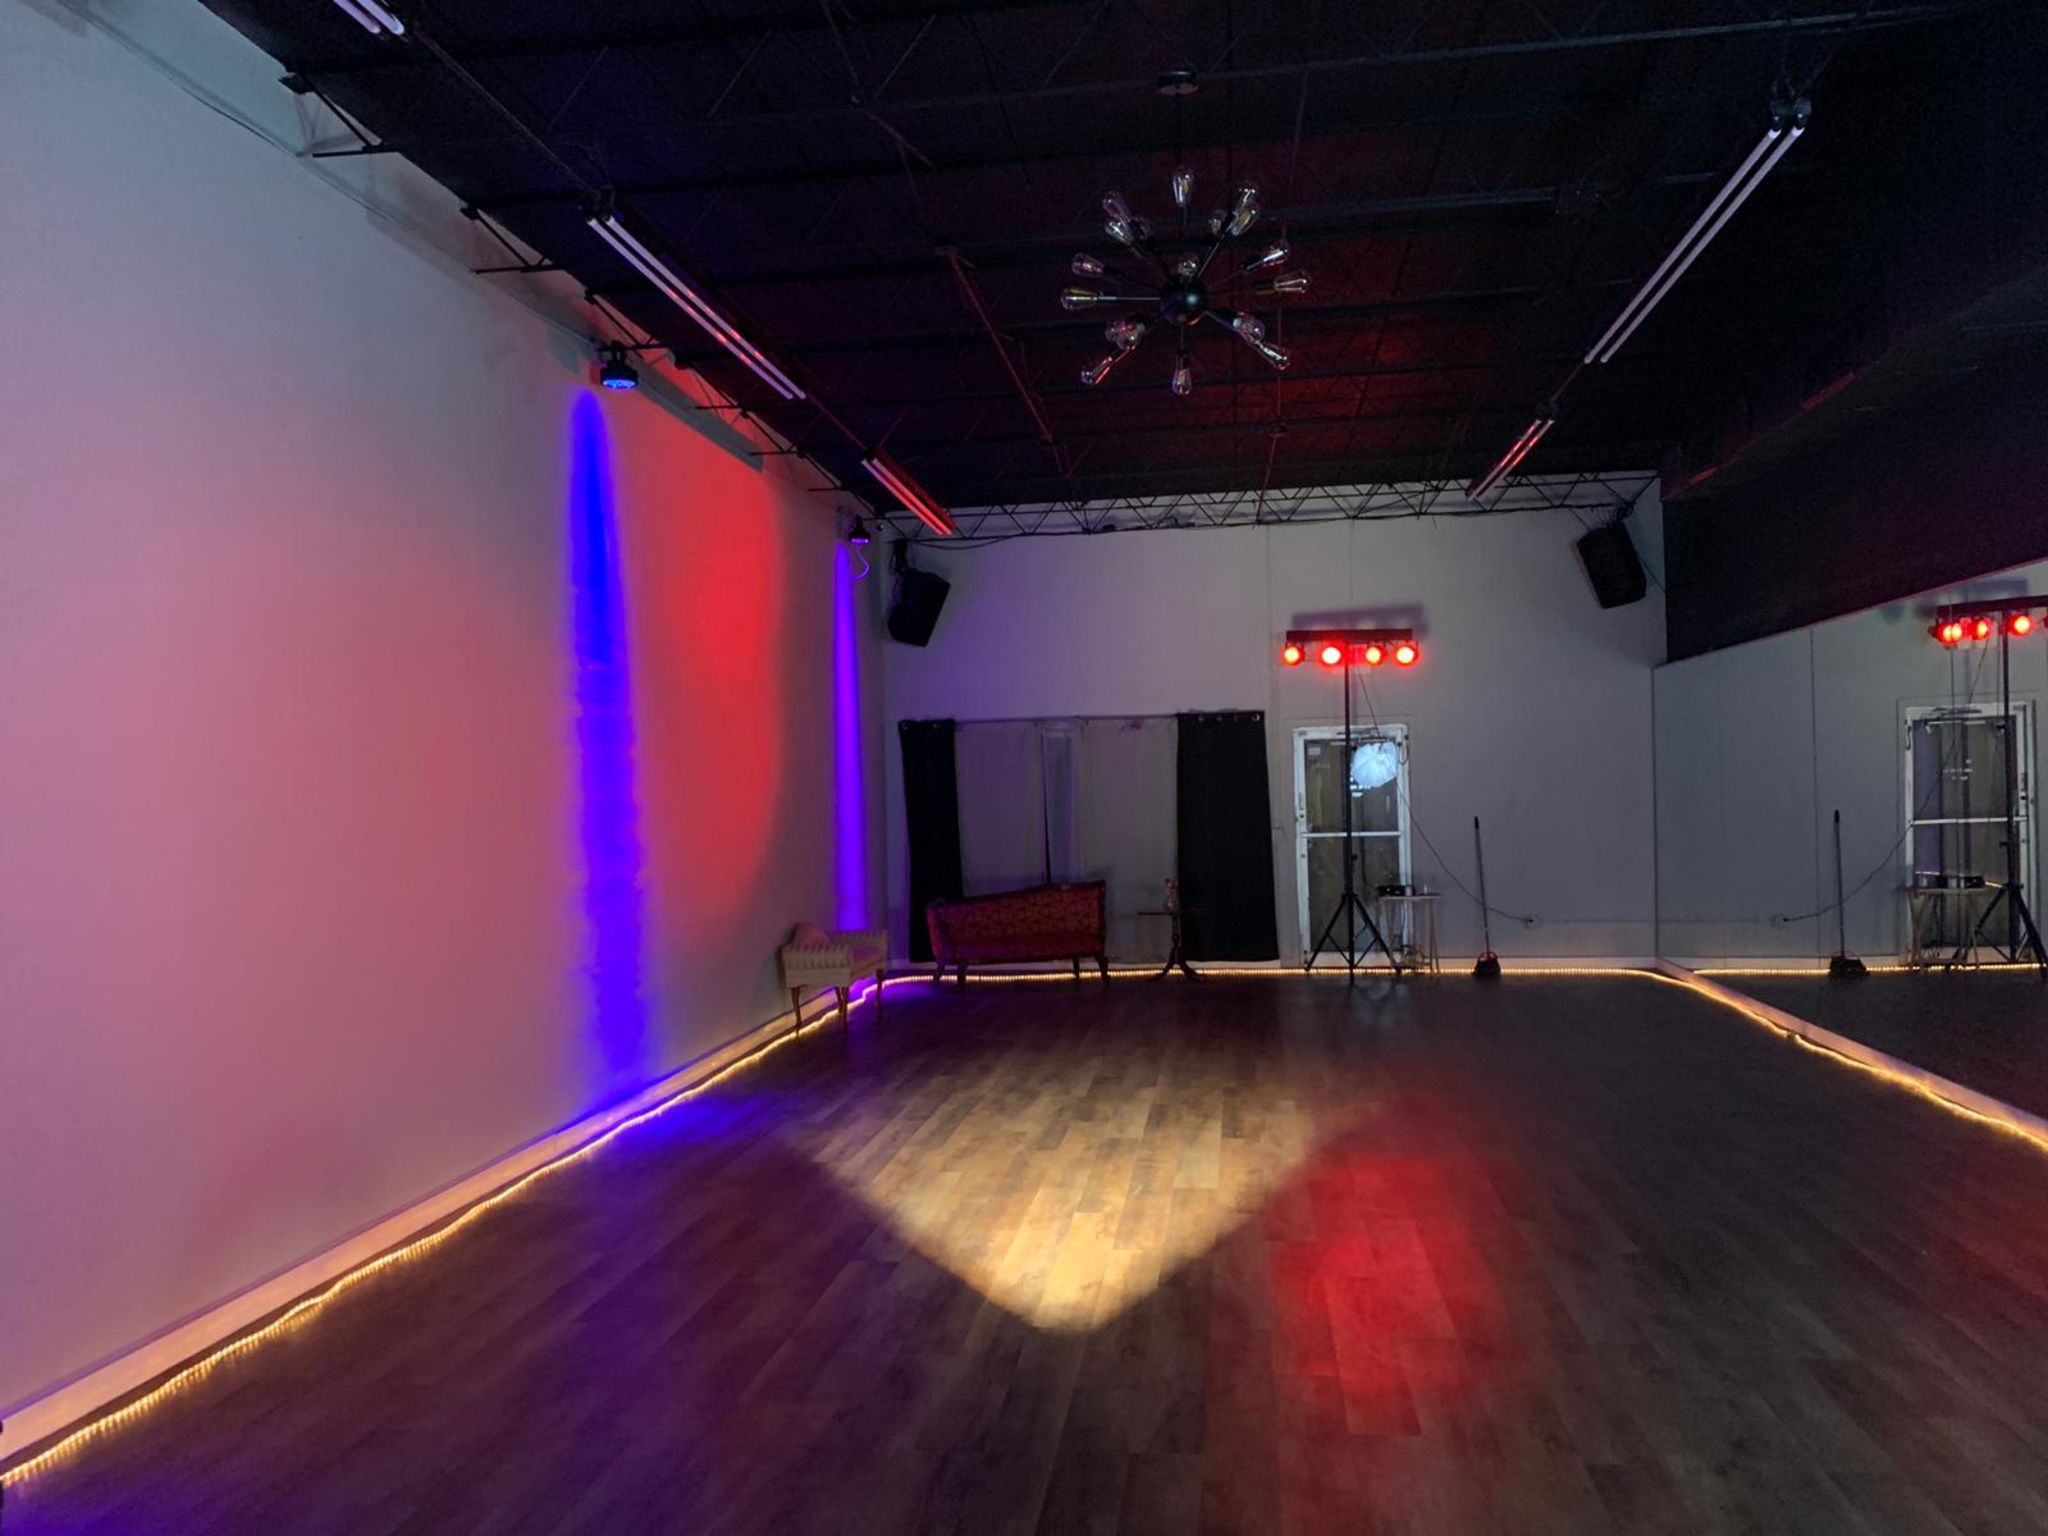 Loft Studio Dance Space Art Fashion District Hallandale Beach Fl Production Peerspace